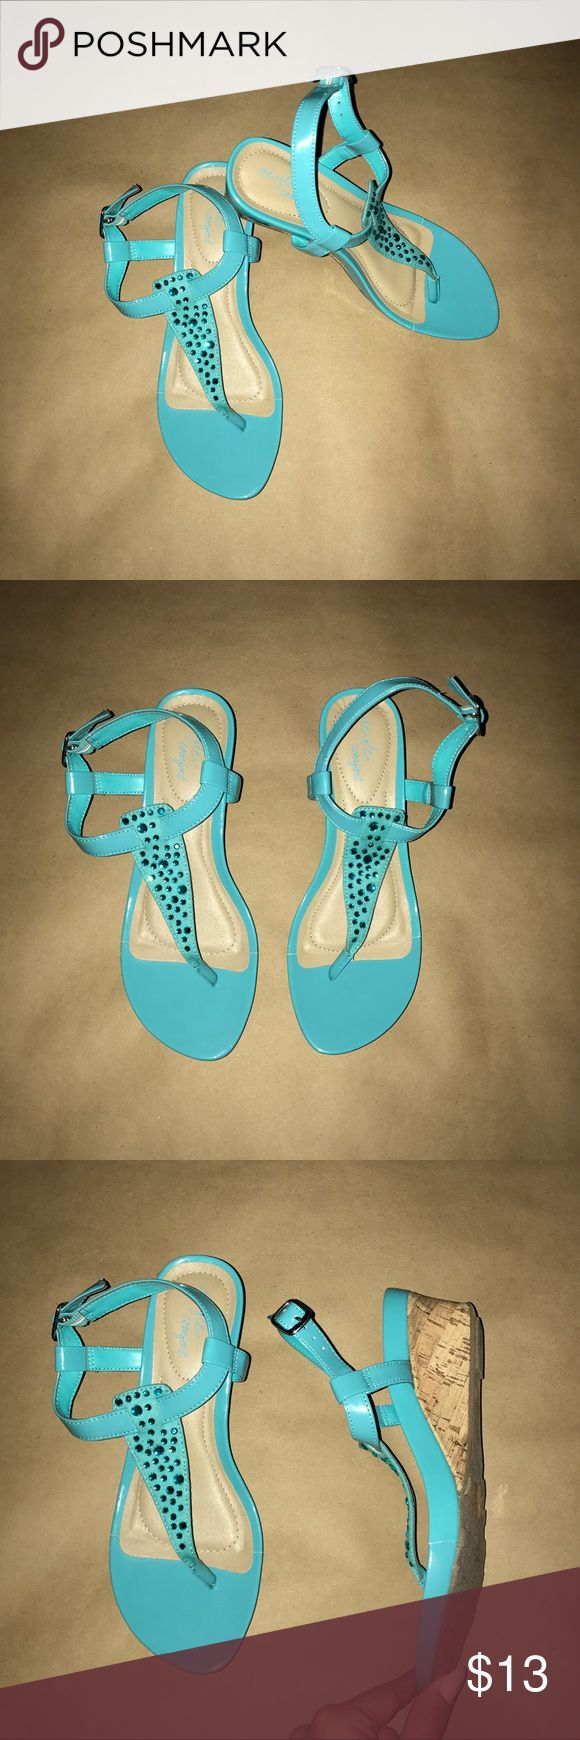 "Dexflex Comfort; Teal Wedged Sandals, Size 6.5 -From the brand Dexflex Comfort. -Size 6 1/2. Approximate measurements: •Length: 9"" •Width: 3"" •Heel: 2 1/8"" -Teal shade. -Buckle at the sides. -No flaws! Dexflex Comfort Shoes Wedges"